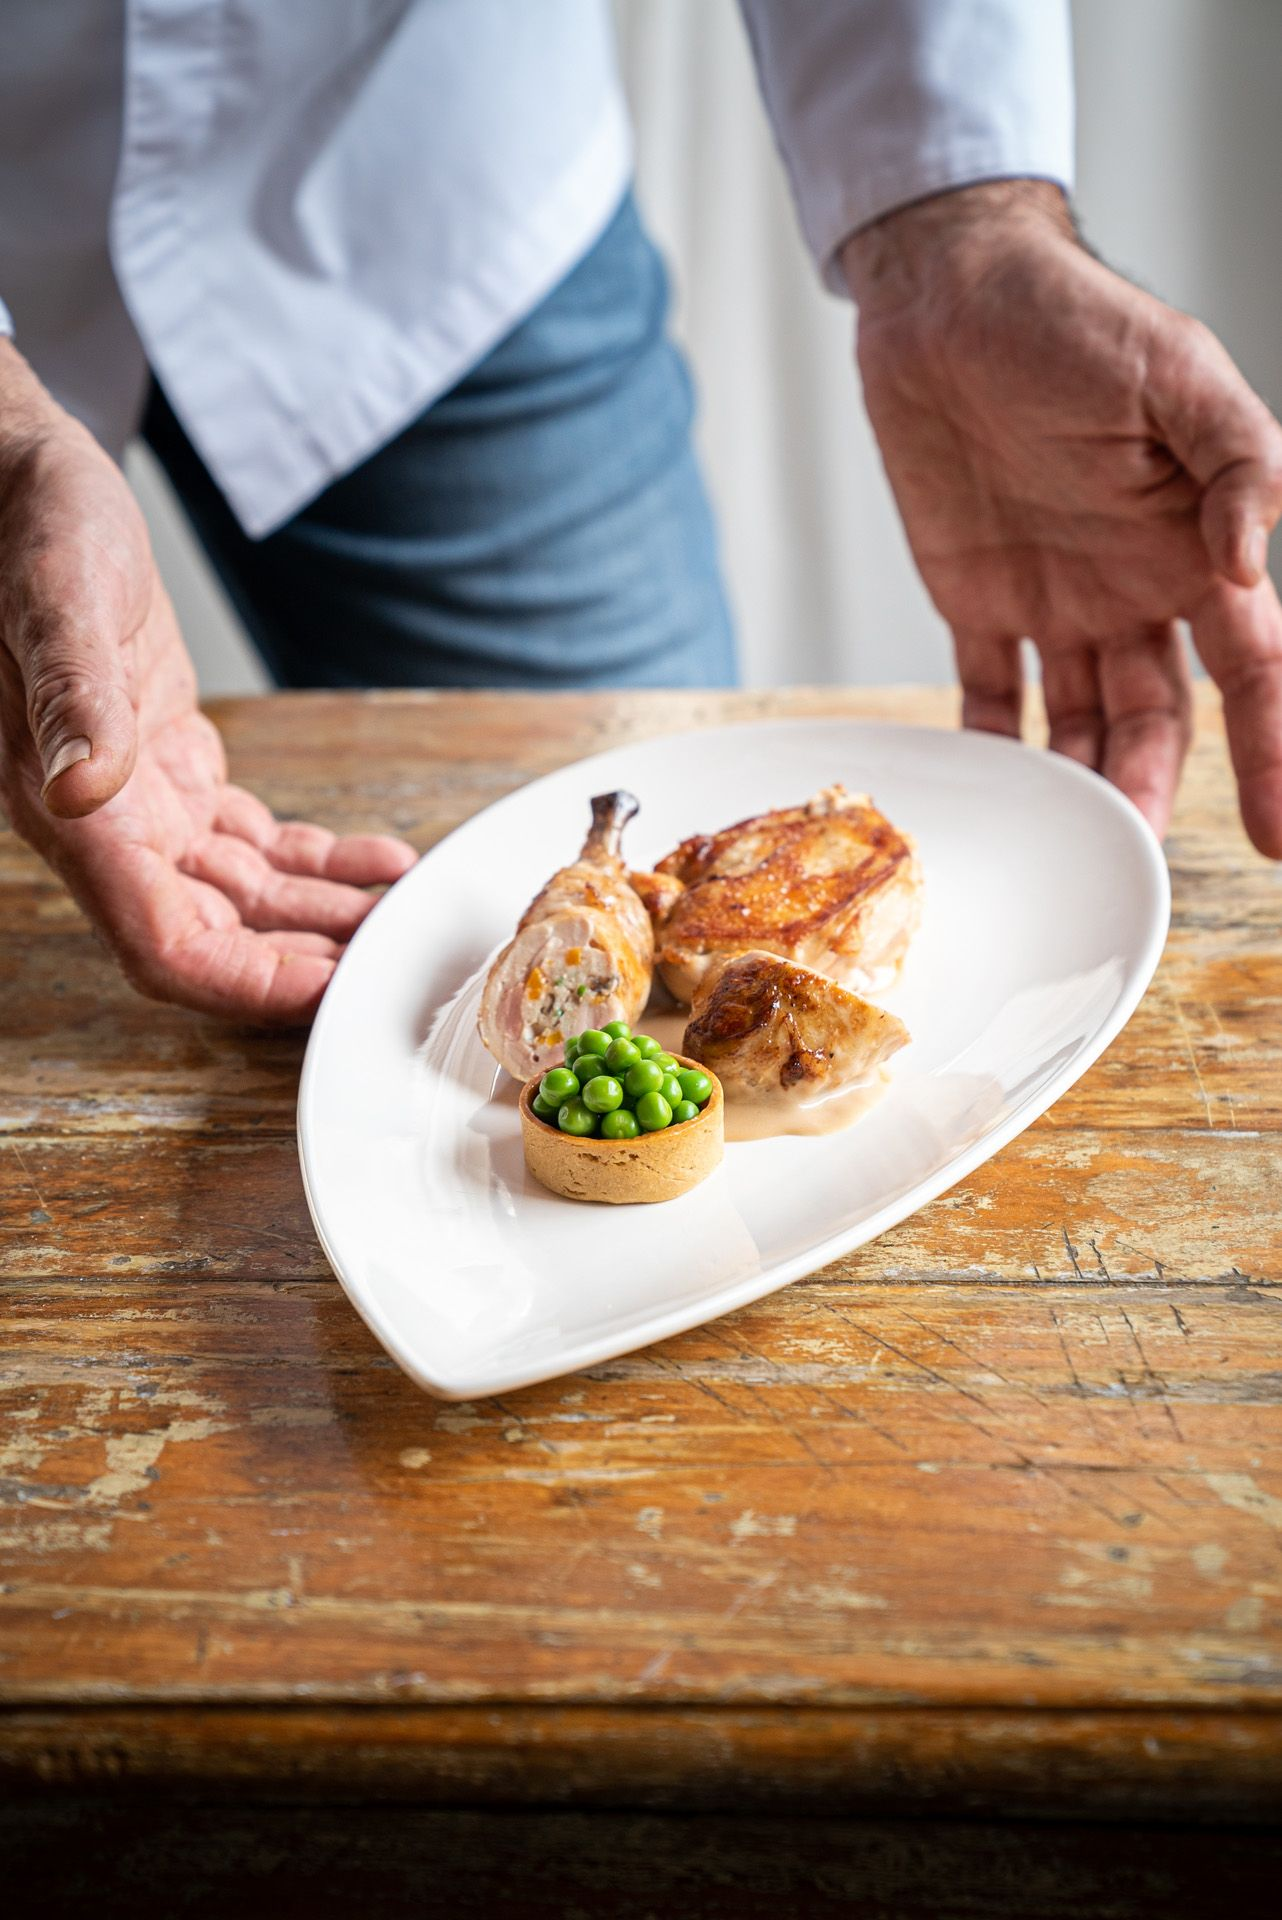 meal of chicken and peas by chef Didier Leroy photographed by Bruno Florin for Van Houtte 100th anniversary